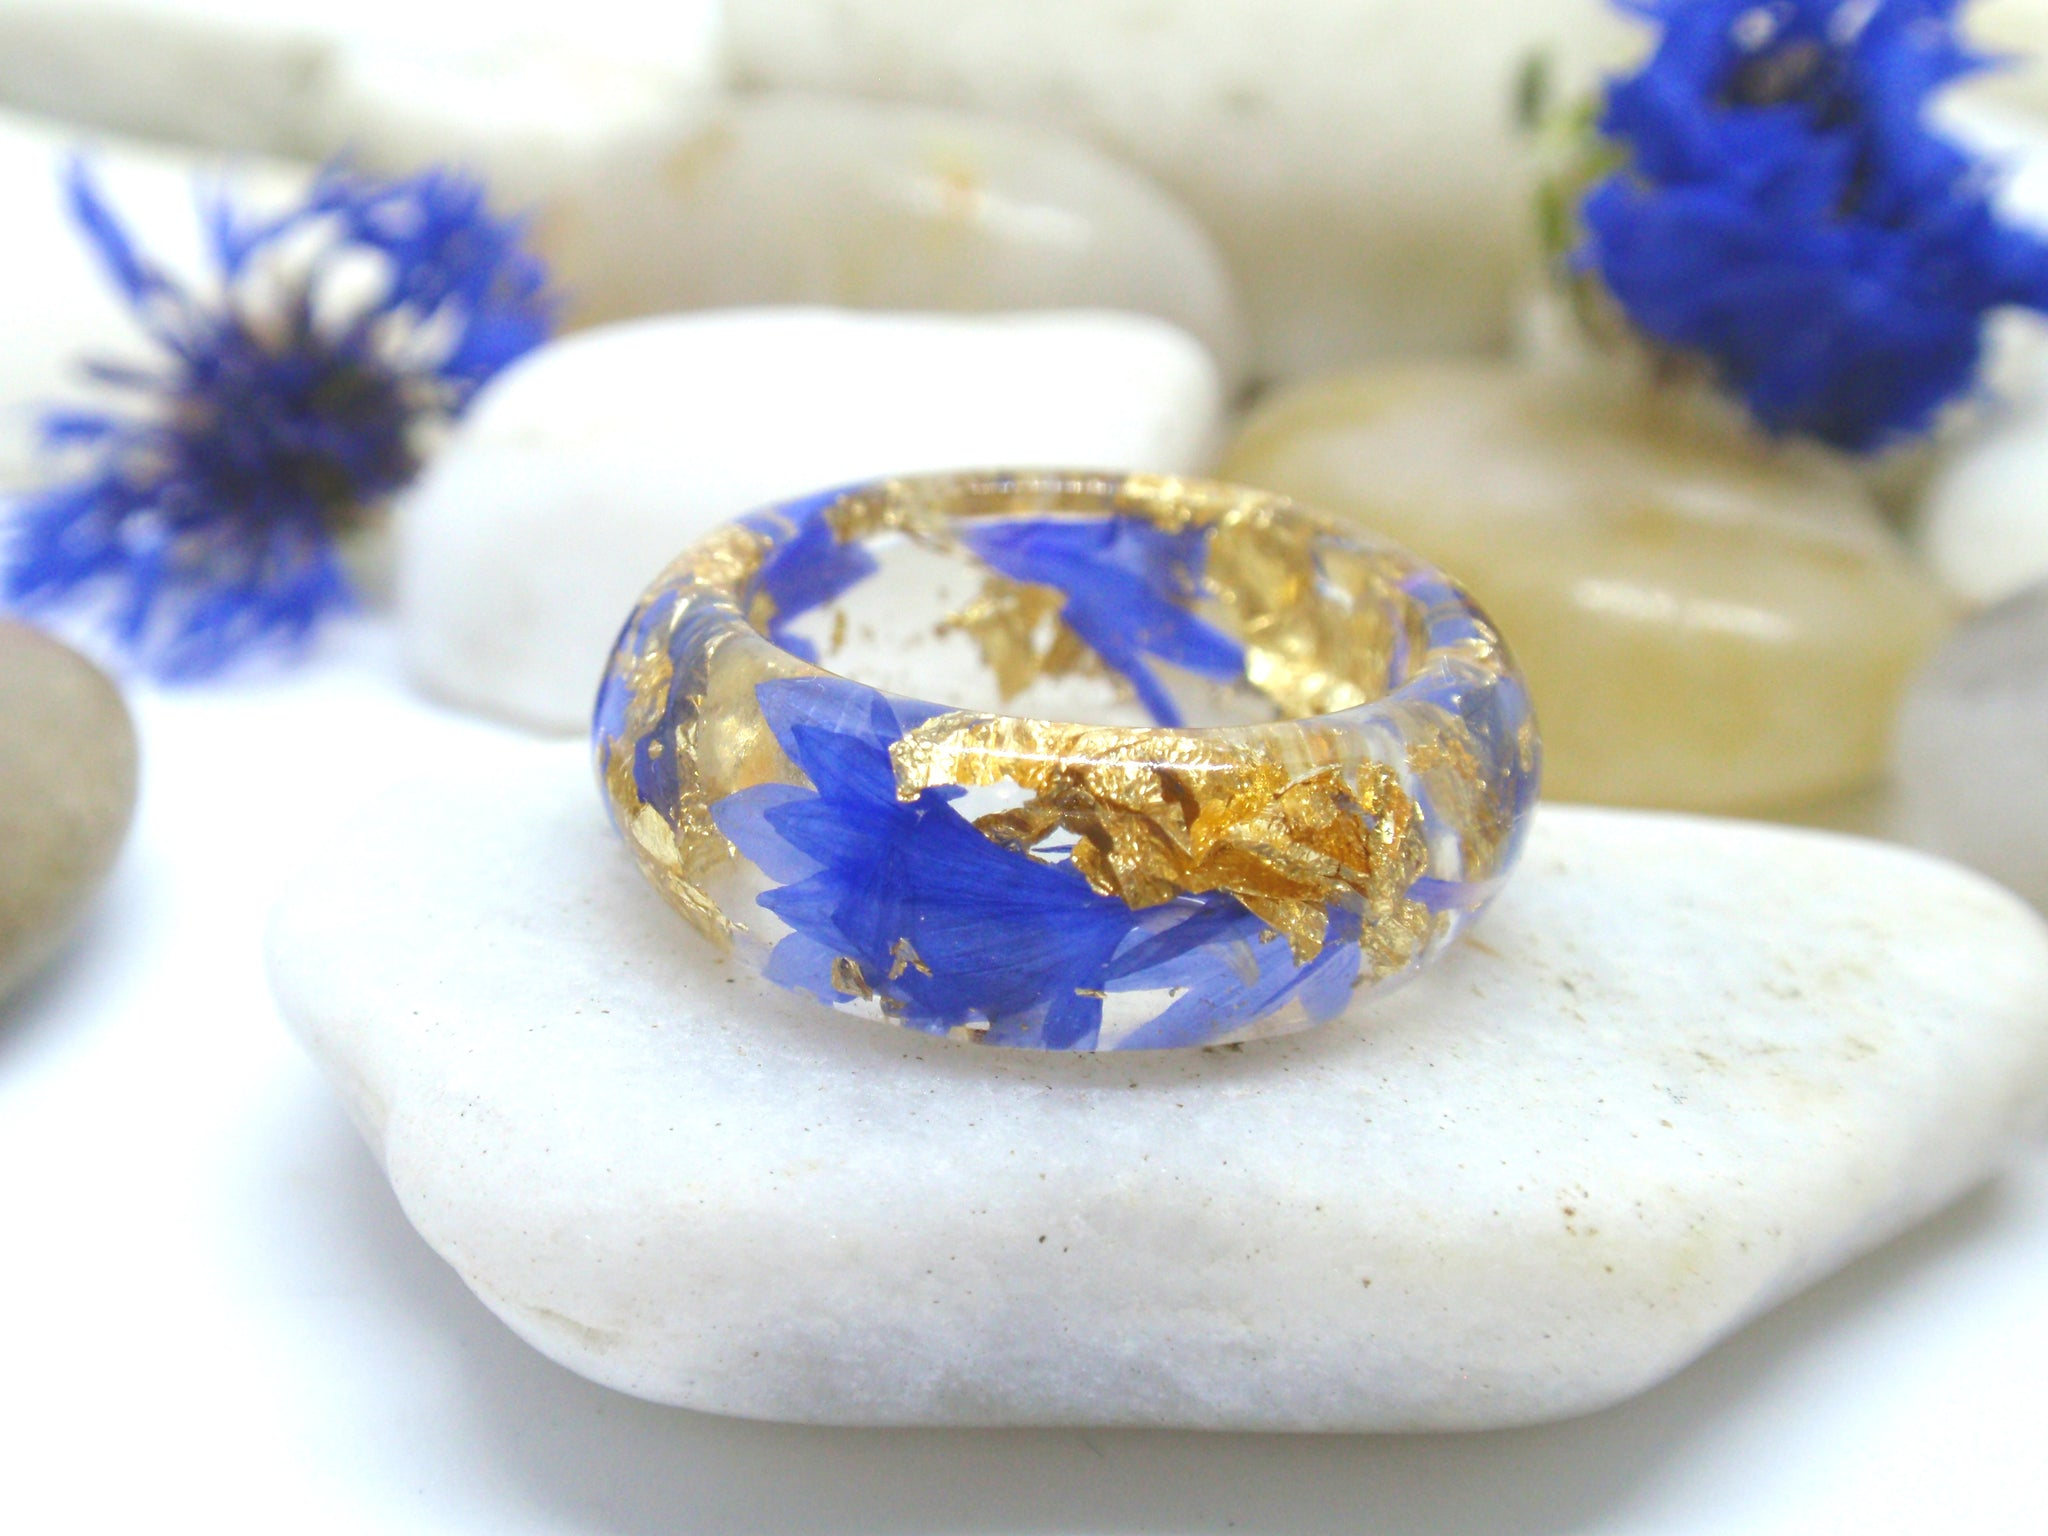 Blue cornflower and gold flakes